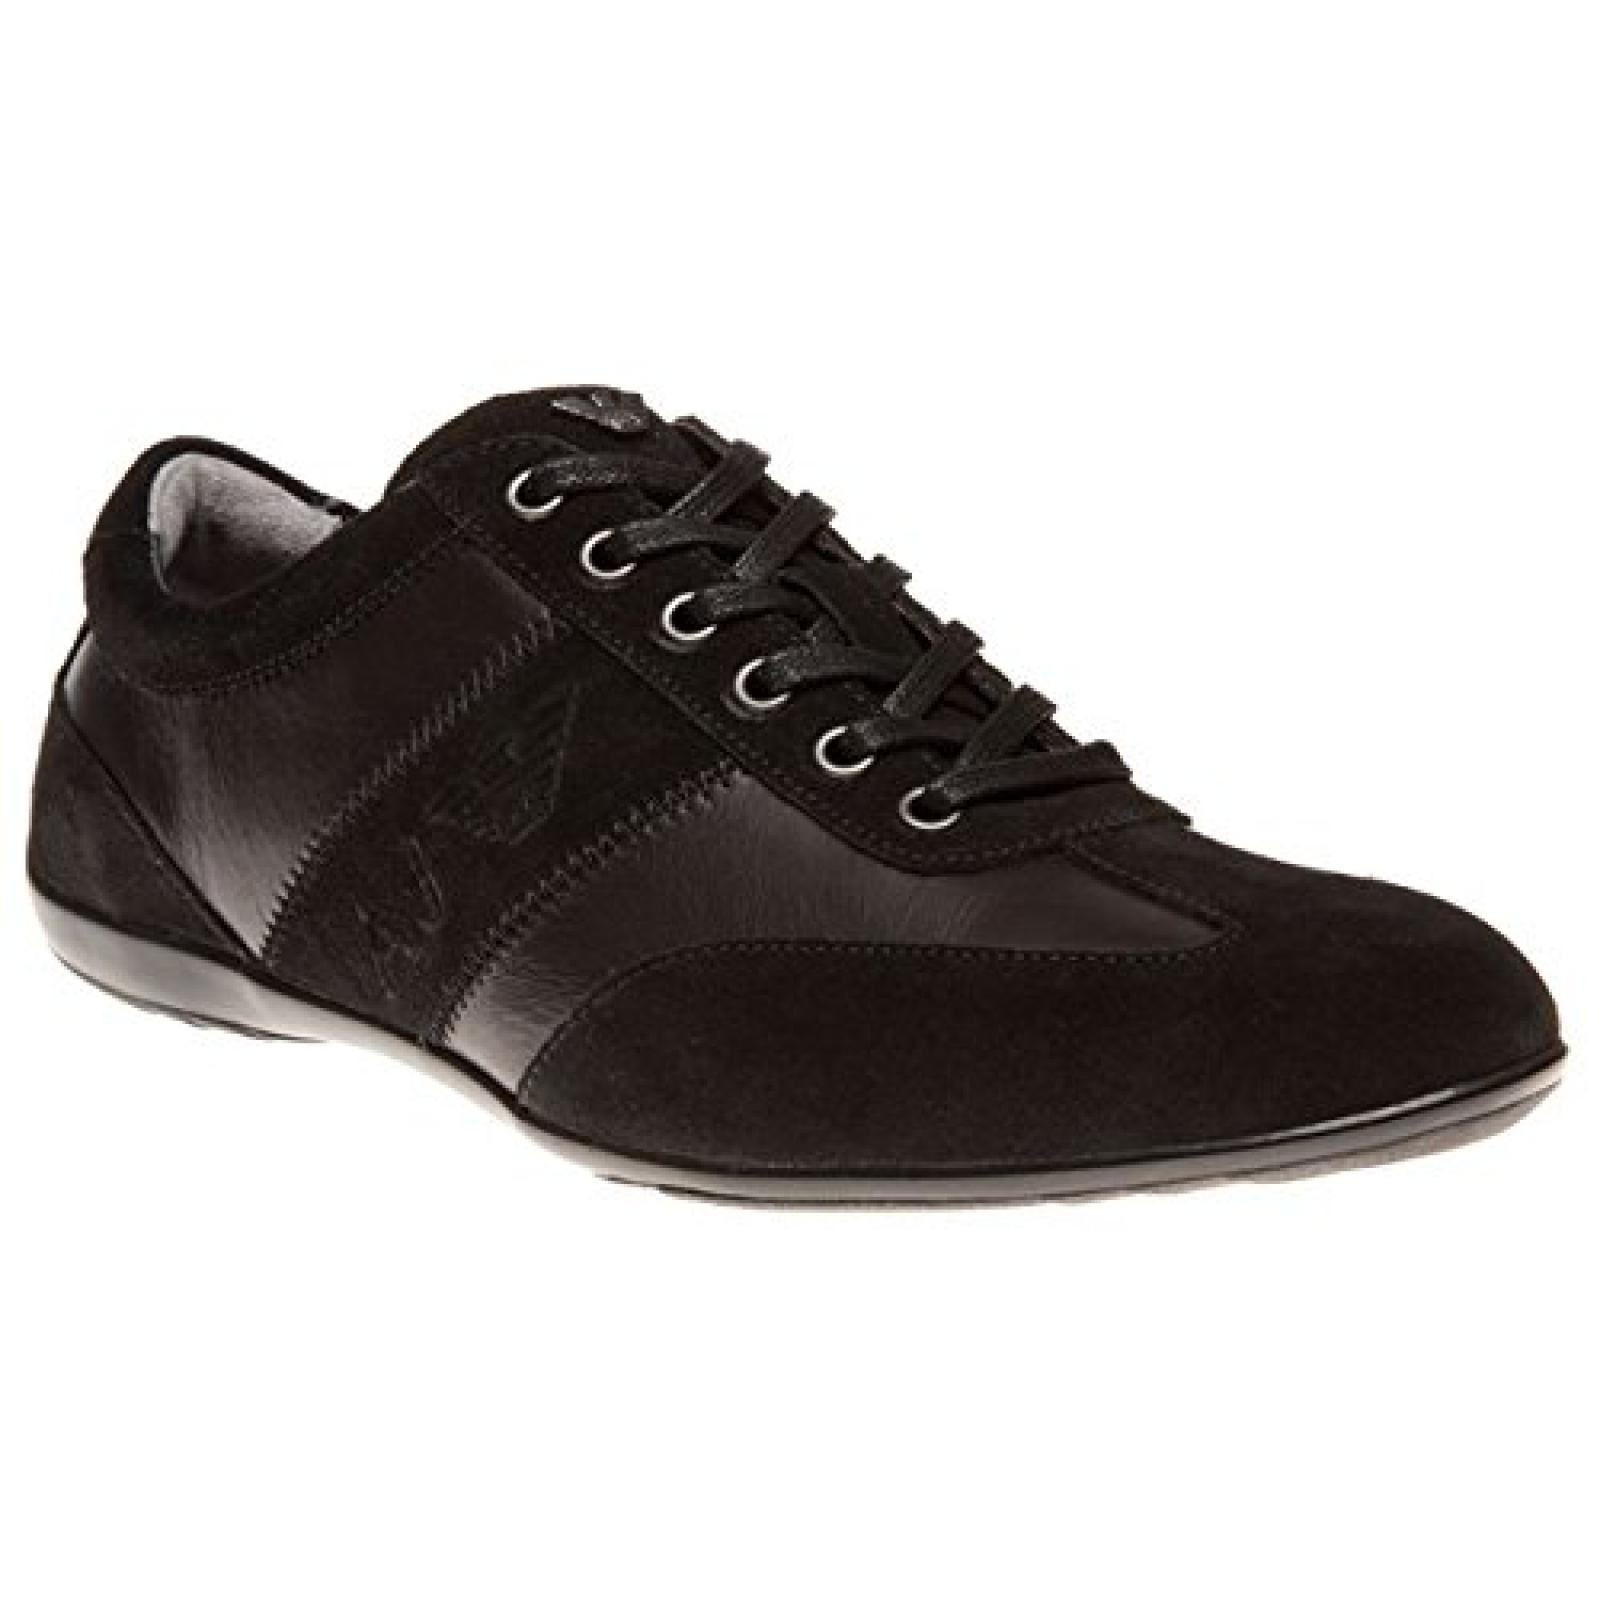 armani jeans formal sneaker herren schuhe schwarz b00ohumrri. Black Bedroom Furniture Sets. Home Design Ideas